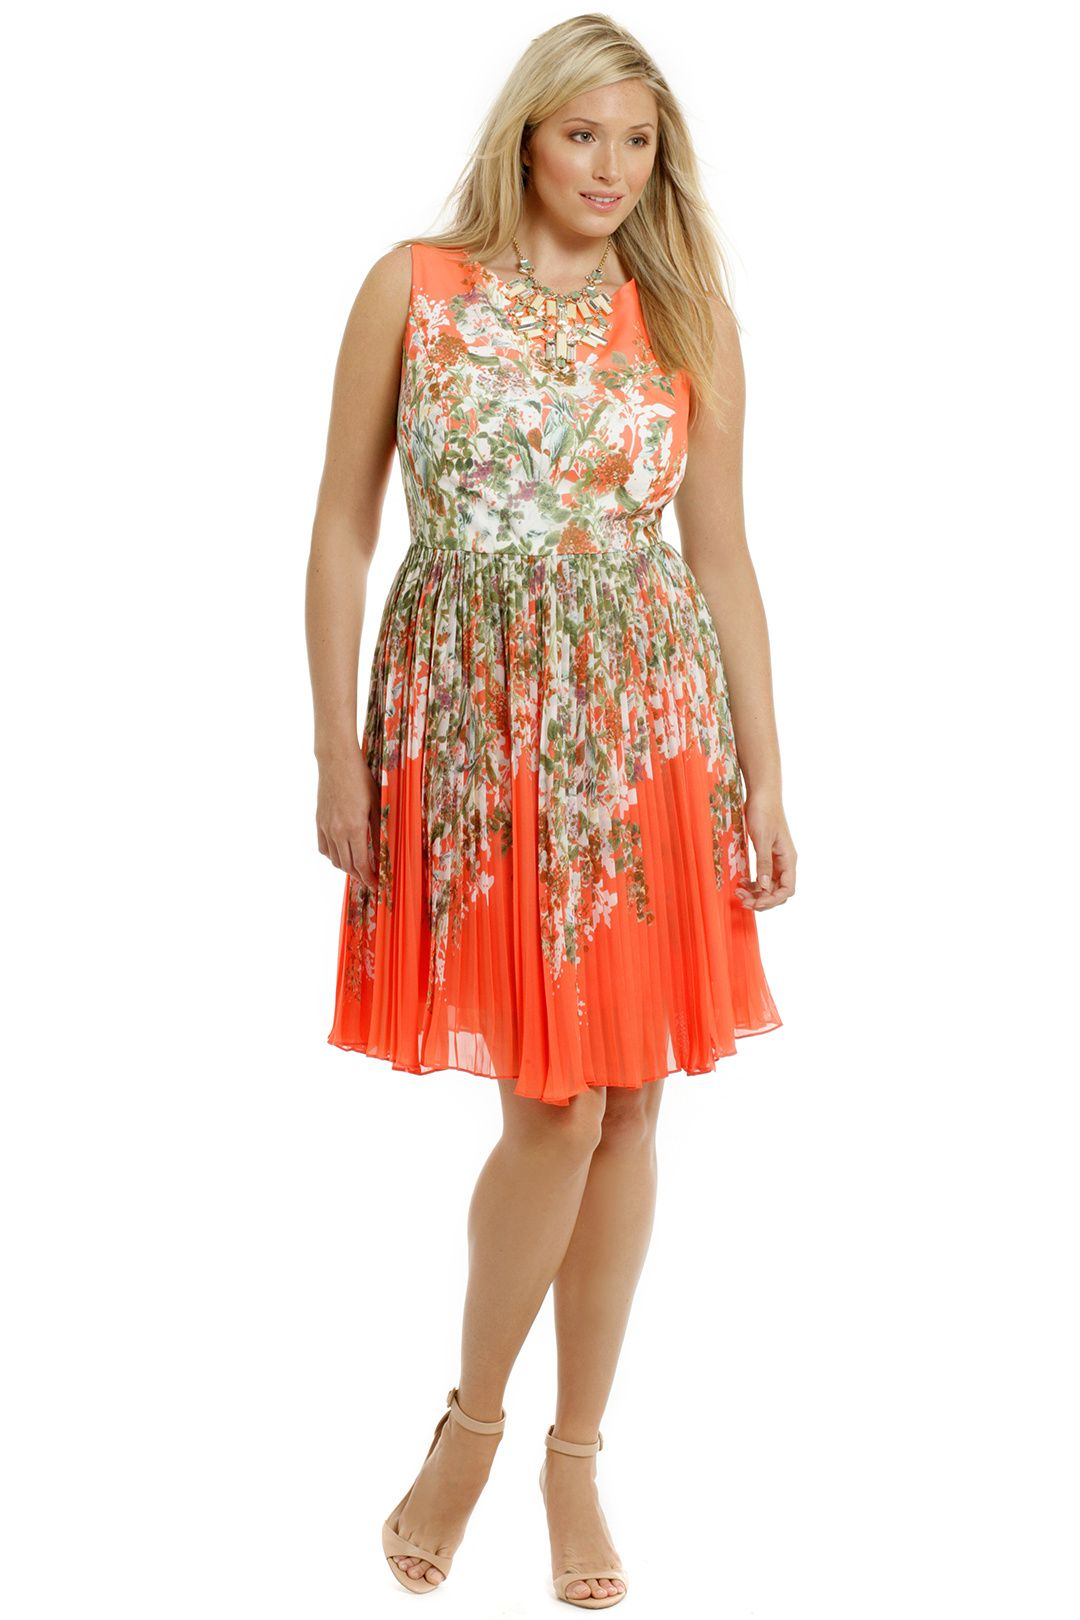 Adrianna Papell Gardenia Dress Guest dresses, Beach